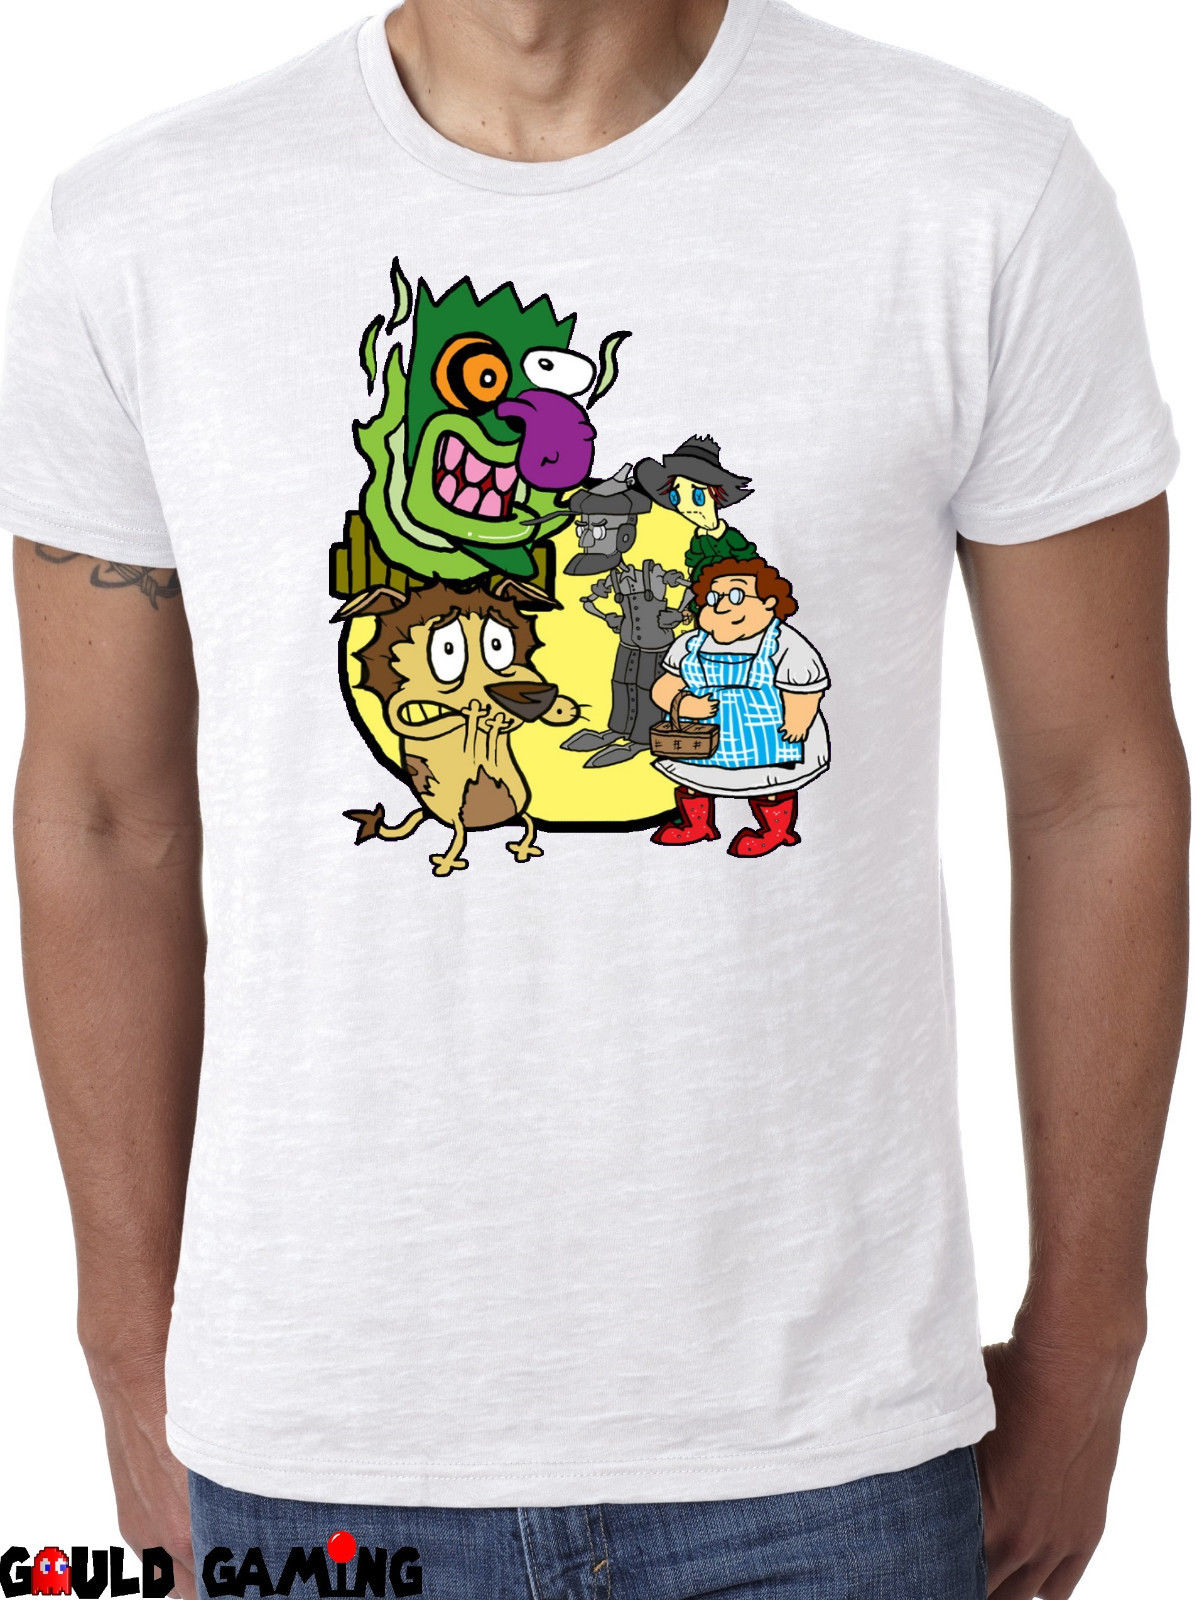 Courage the Cowardly Dog Wizard of Oz T-Shirt Unisex Cotton Funny New Short Sleeve Cotton T Shirts Man Clothing Letter Printing